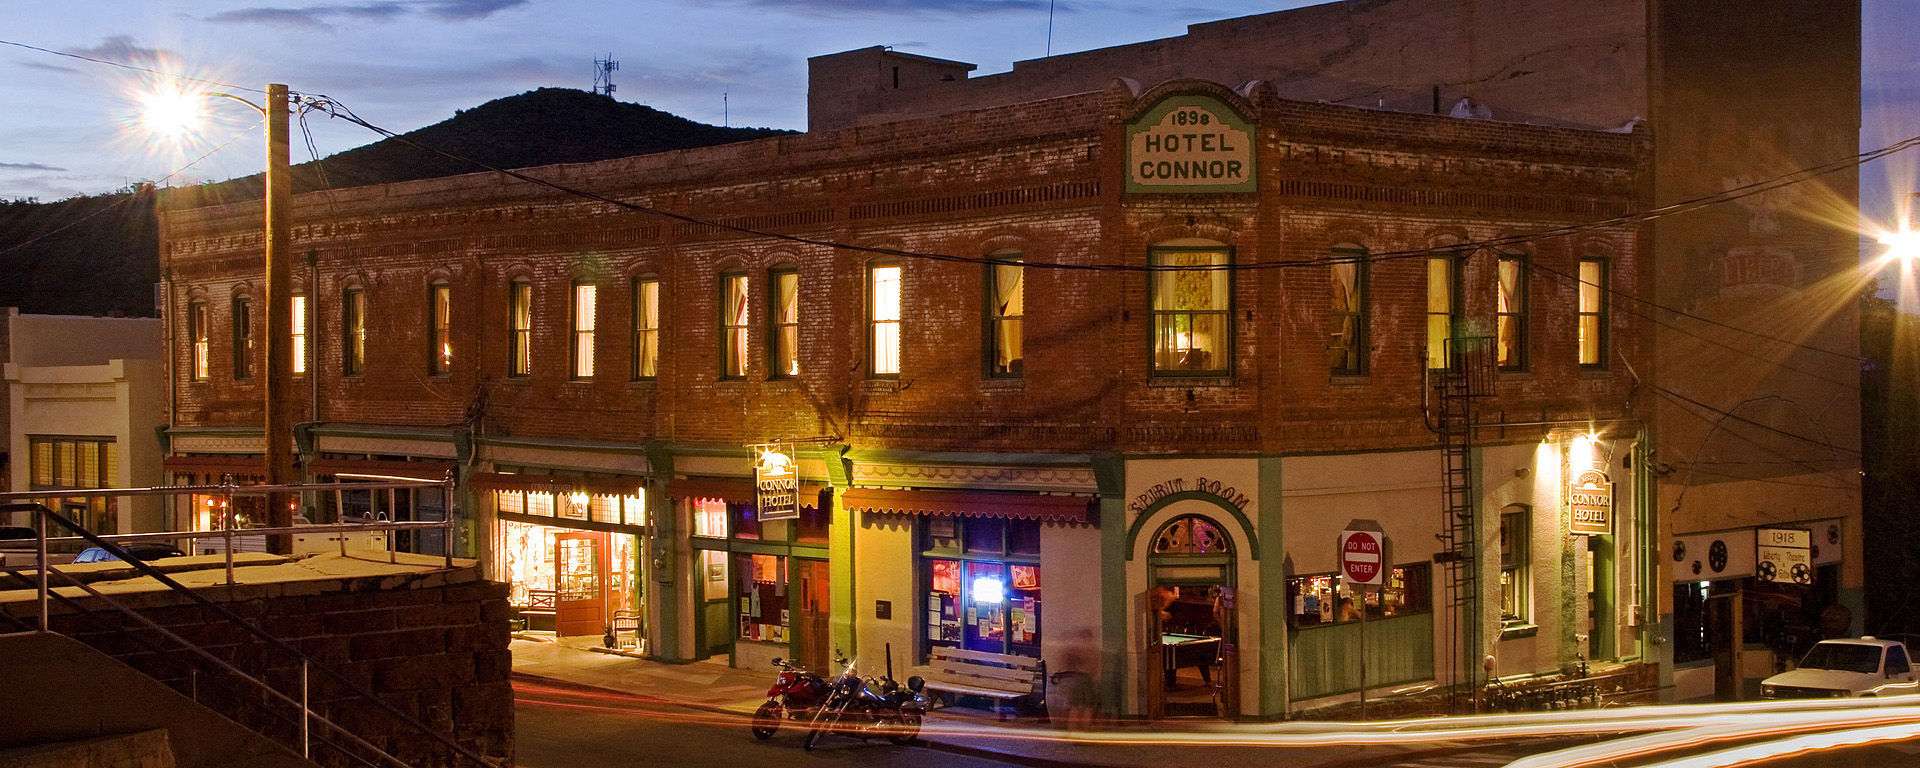 exterior photograph of the connor hotel in jerome arizona by ron chilston